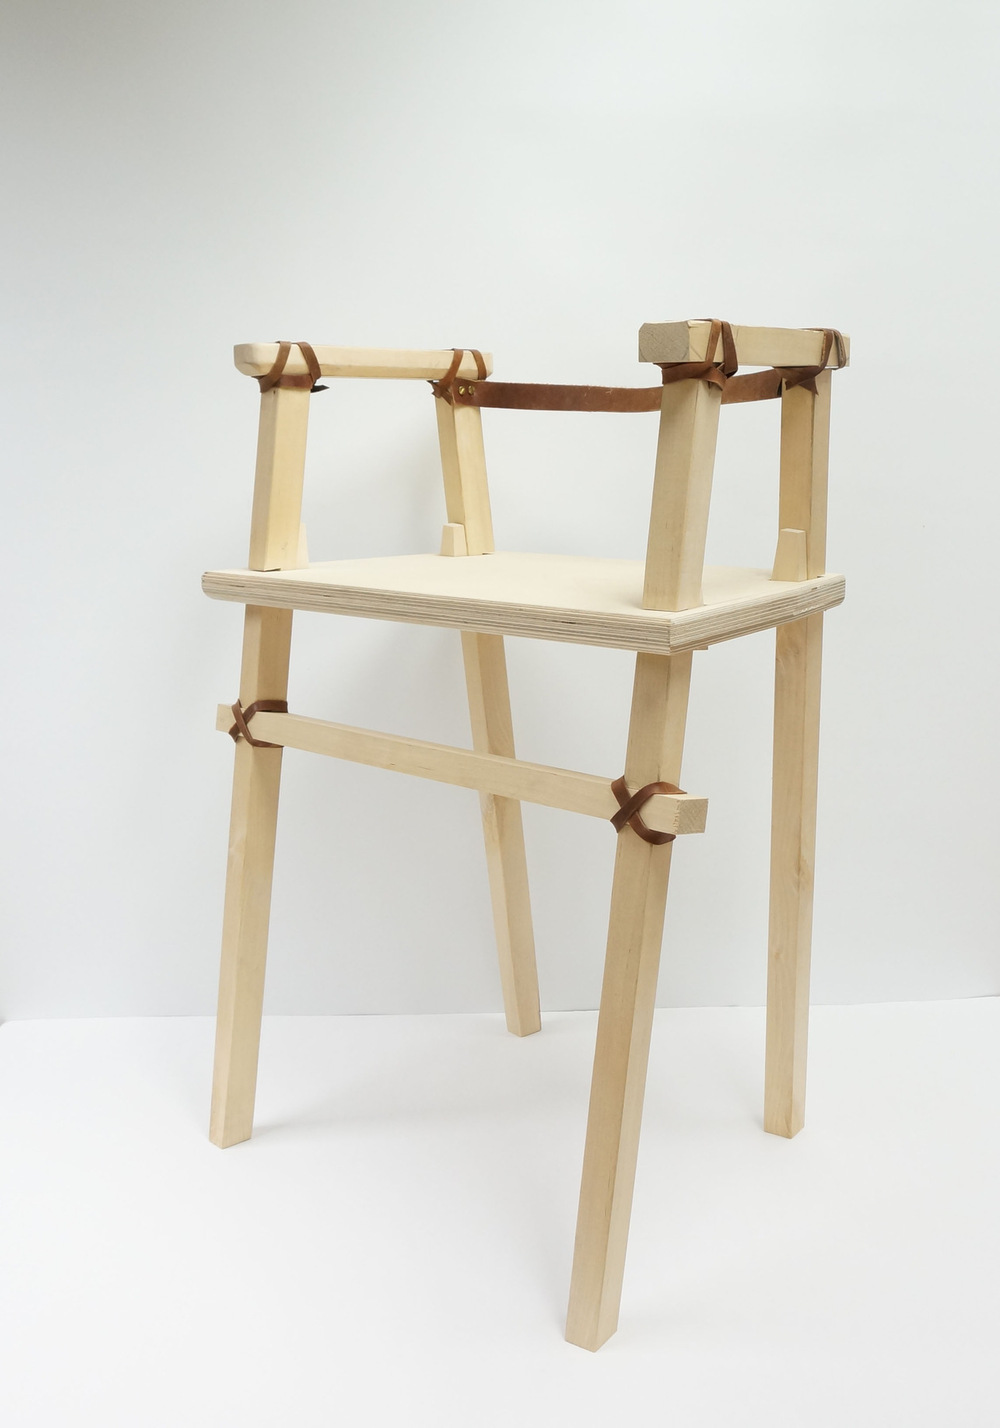 Dackelid Form - The legs go through the seat with a cut out joint and wedges, when the user sits down the weight of the person will lock the construction